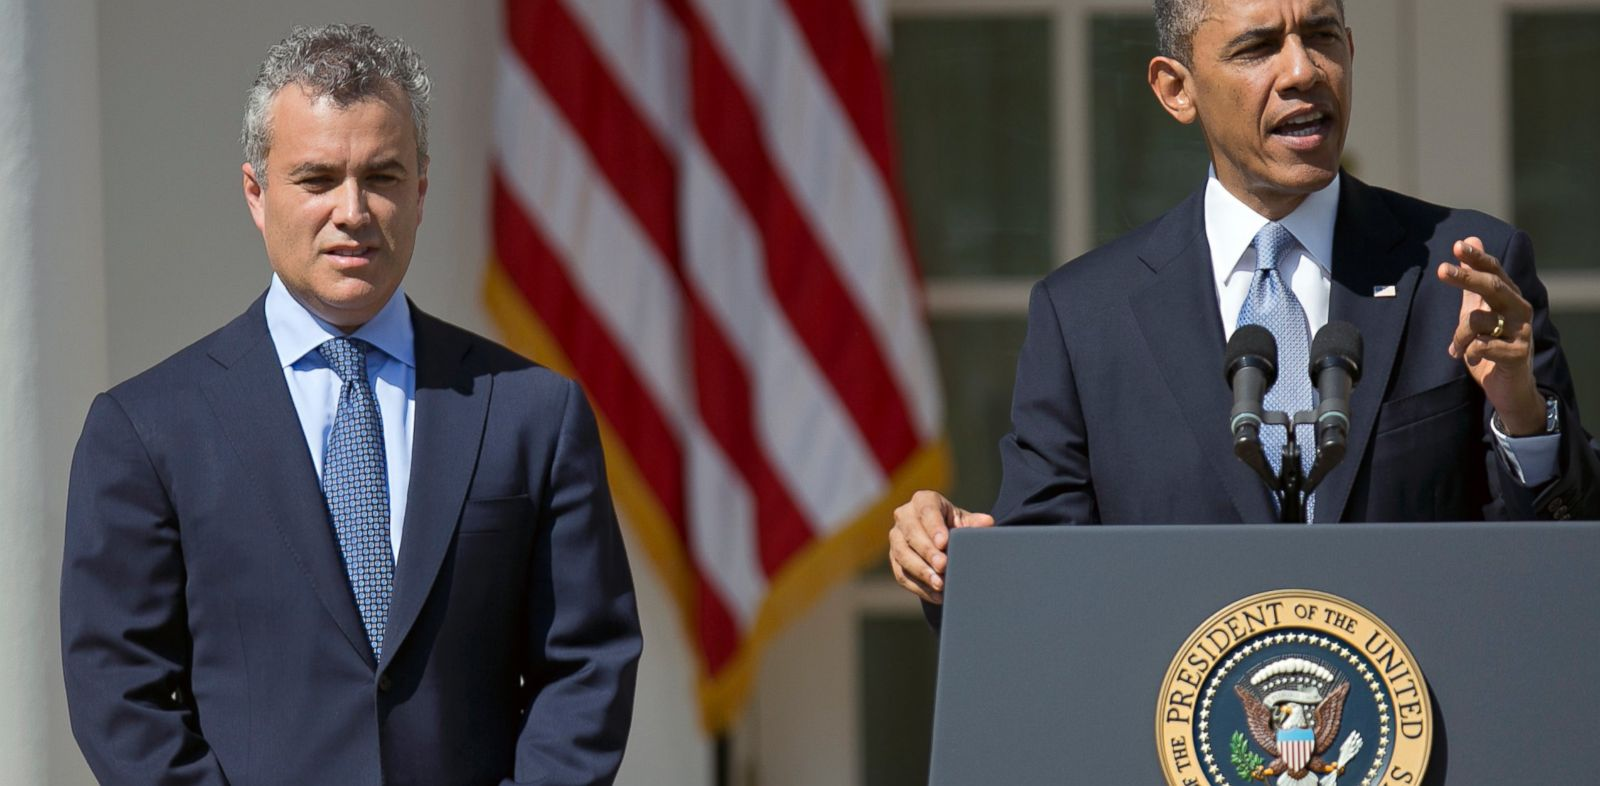 PHOTO: Acting budget director Jeff Zients looks on as President Barack Obama speaks about his proposed 2014 budget during a press conference in the Rose Garden of the White House in Washington, in this April 10, 2013 photo.